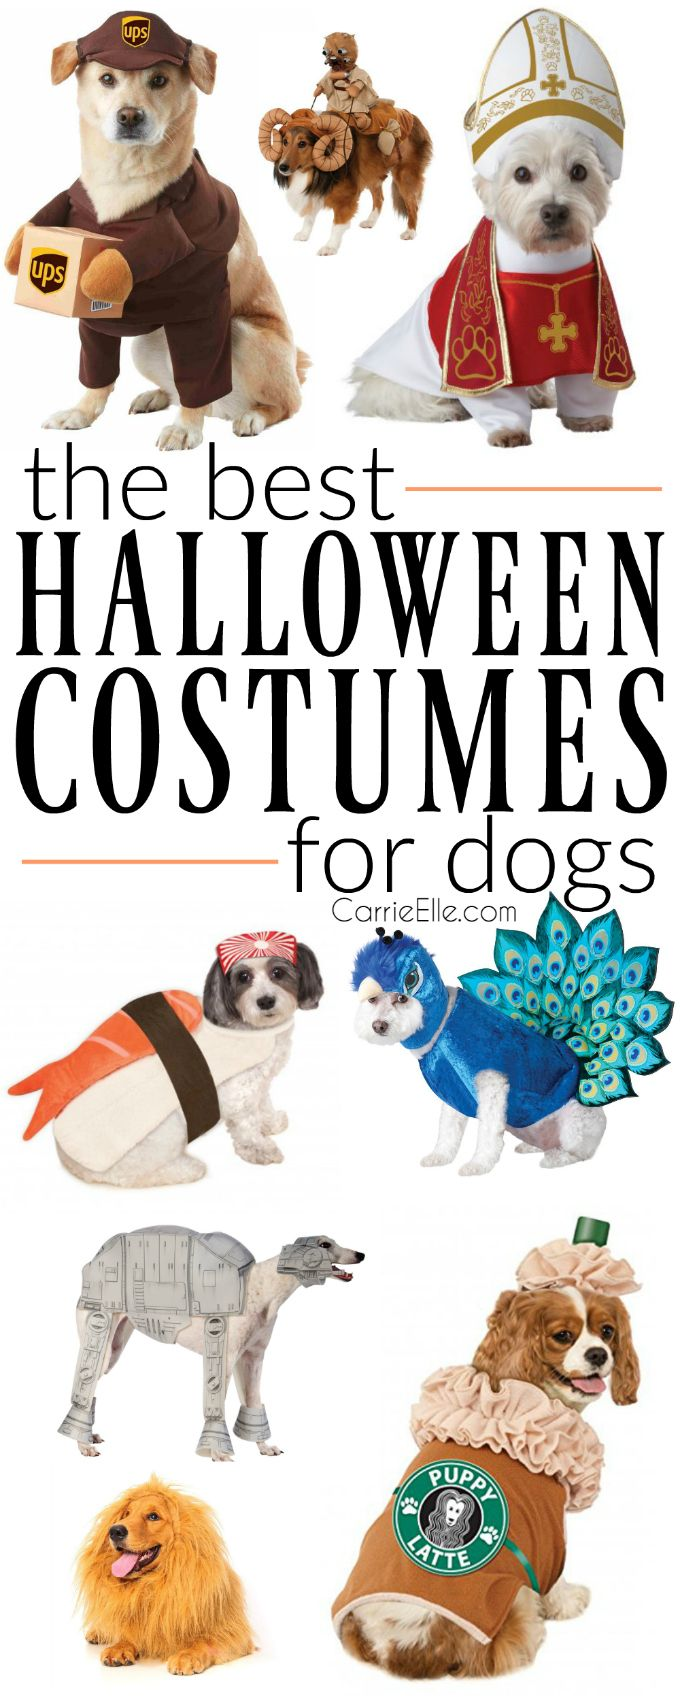 How to dress up your dog in a diy pineapple costume pineapple how to dress up your dog in a diy pineapple costume pineapple costume costumes and tutorials solutioingenieria Gallery